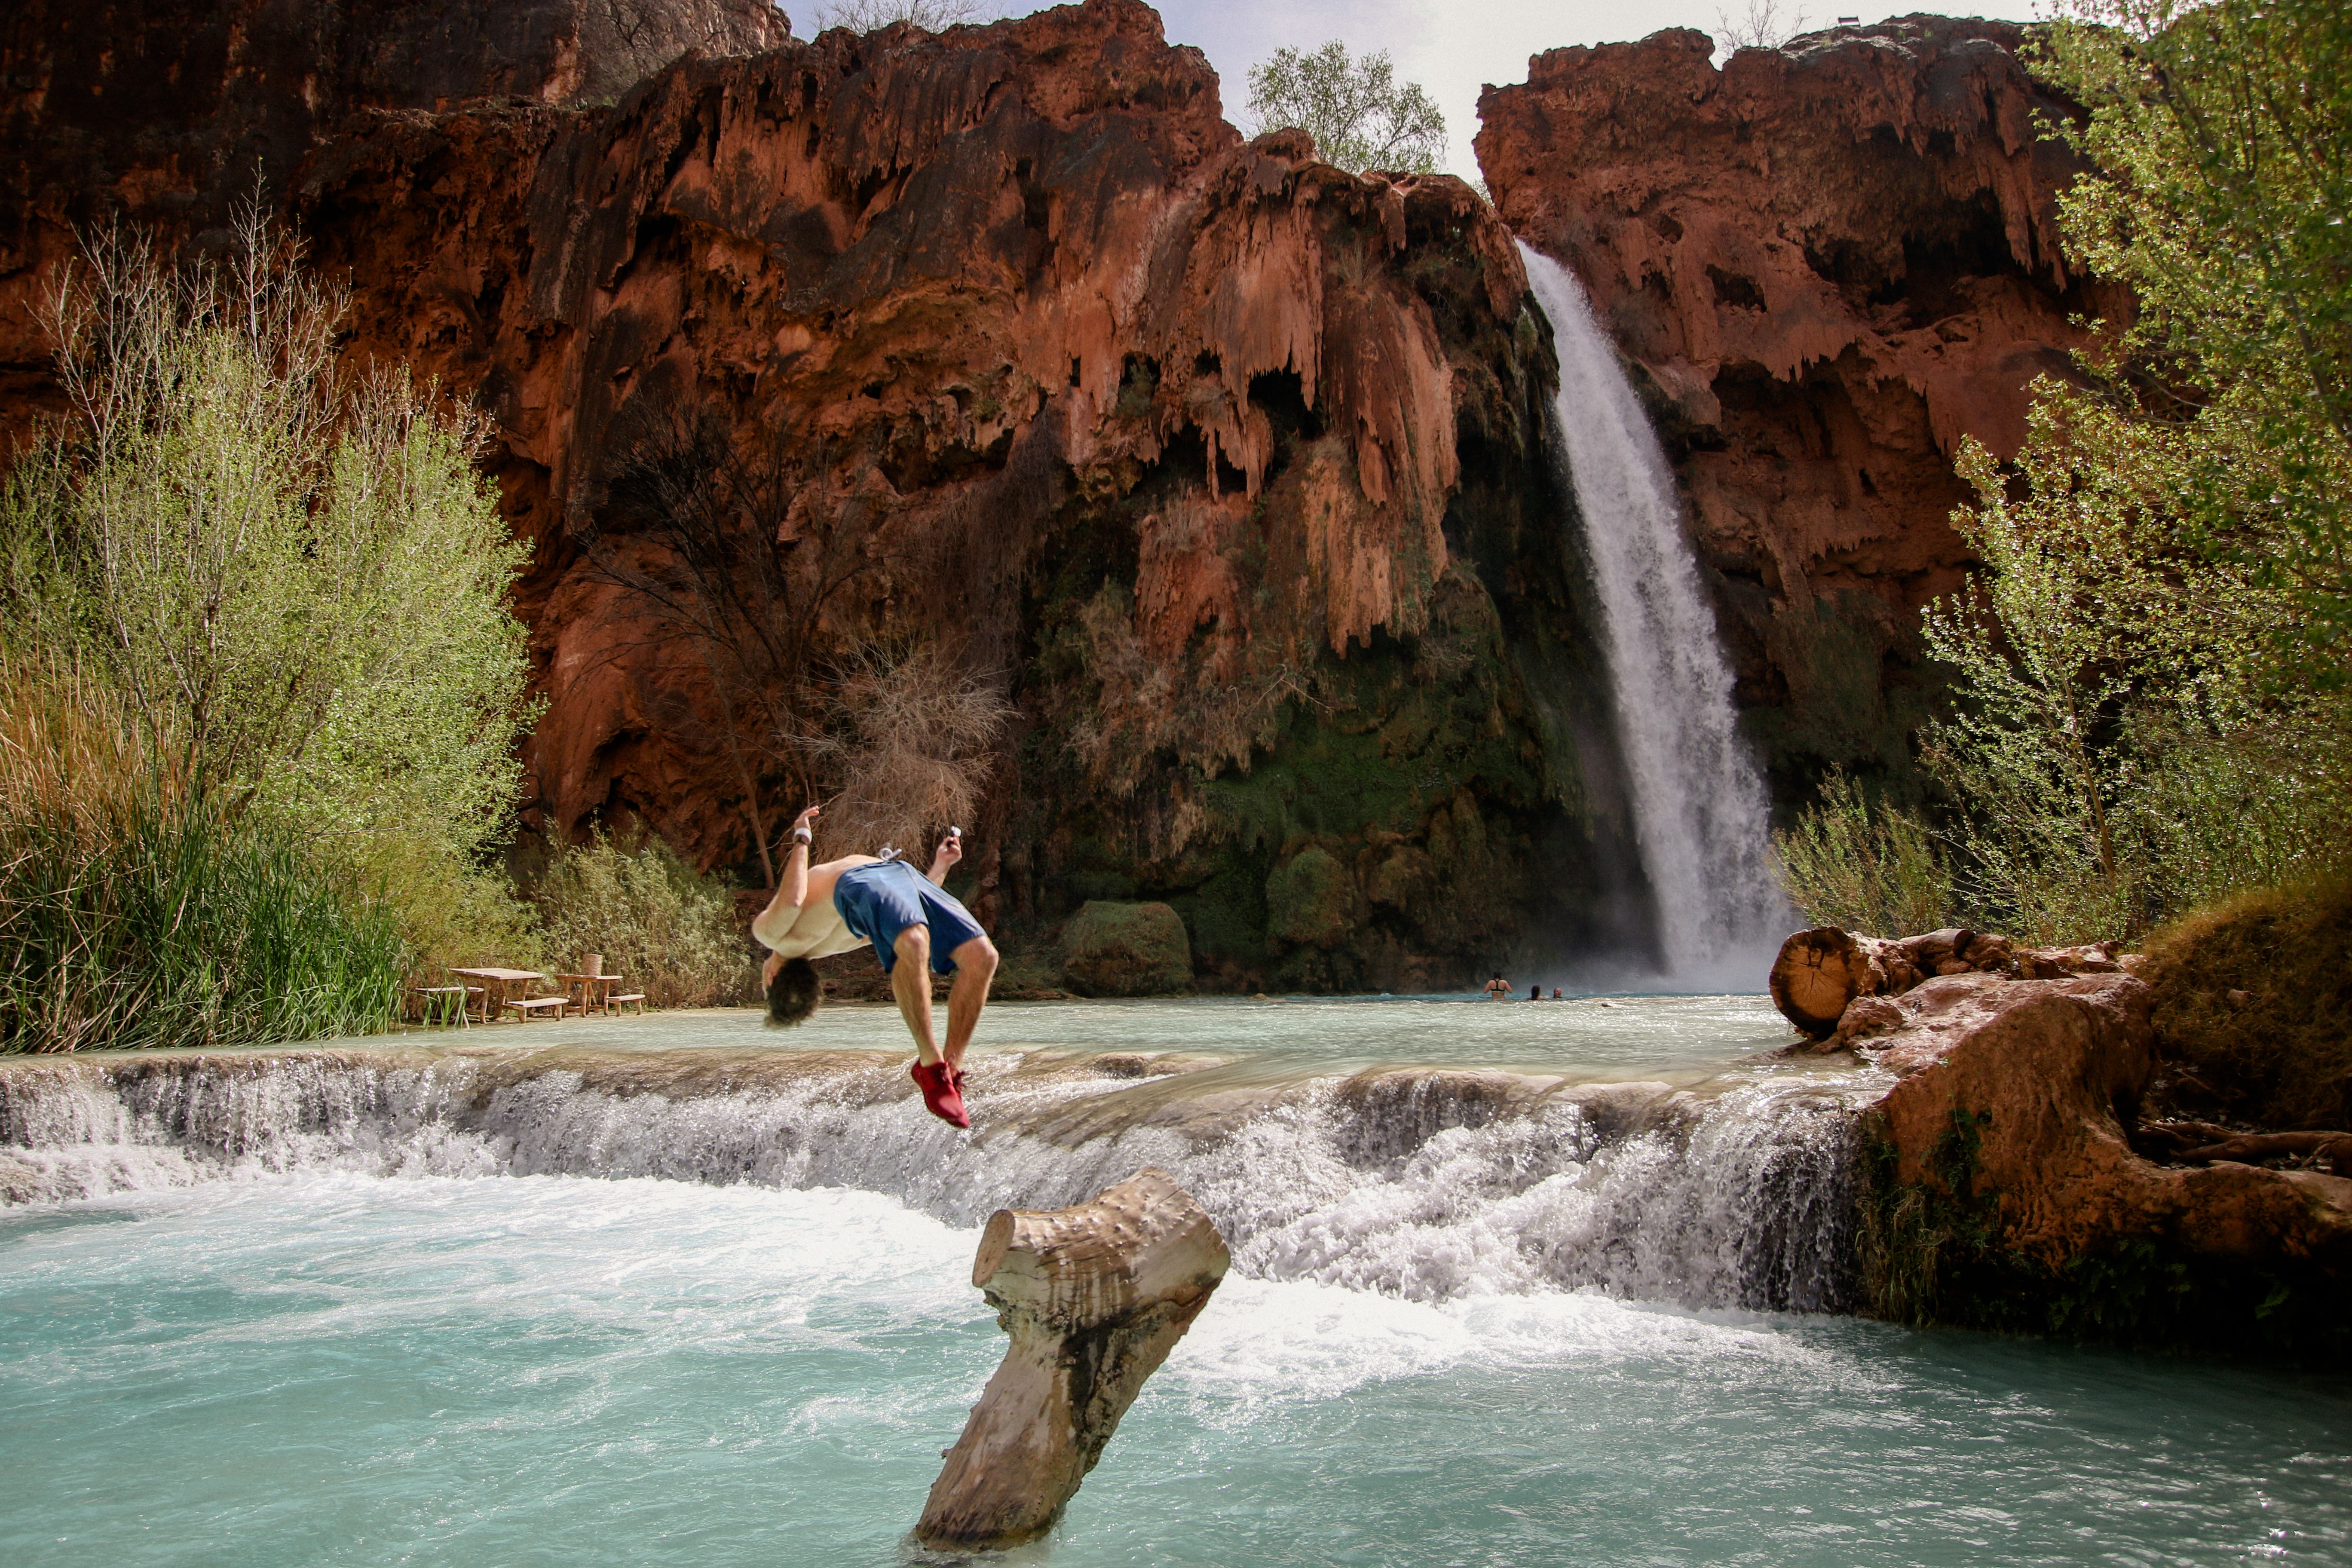 A person does a backflip into the water at a mountain pond at the bottom of a tall waterfall